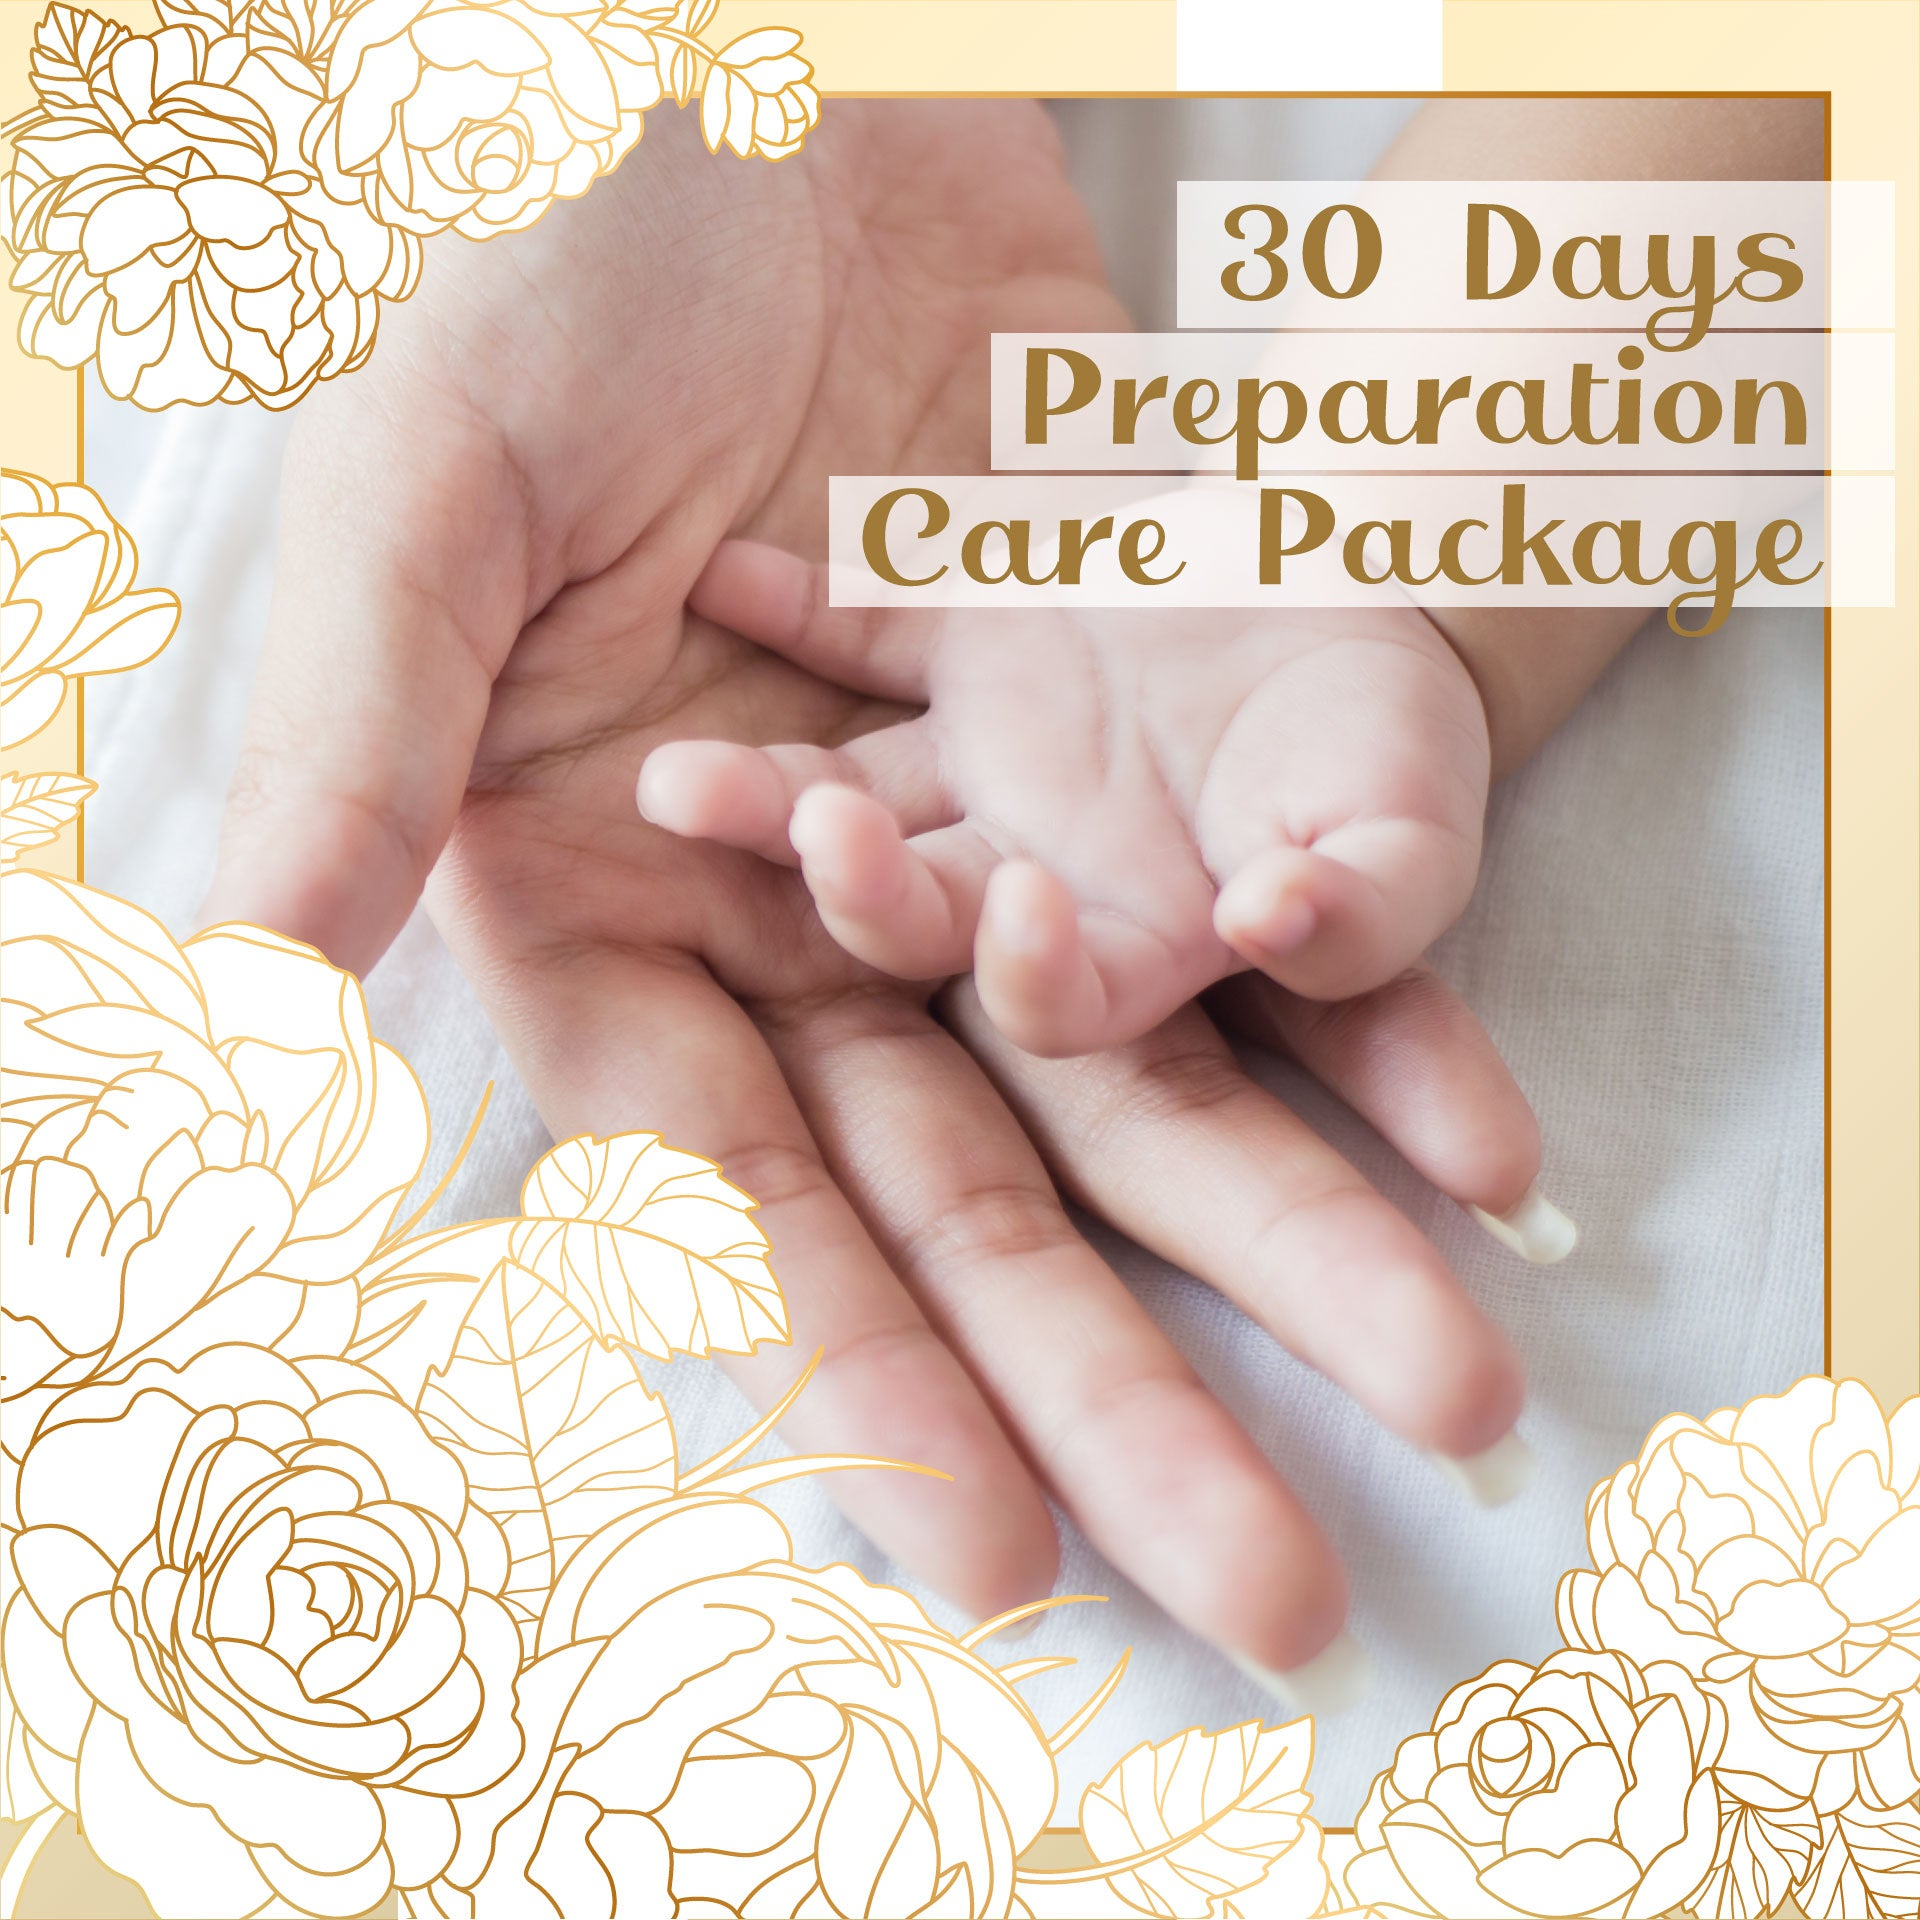 30 Days Preparation Care Package (8 Boxes of Organic Drip Chicken Essence)